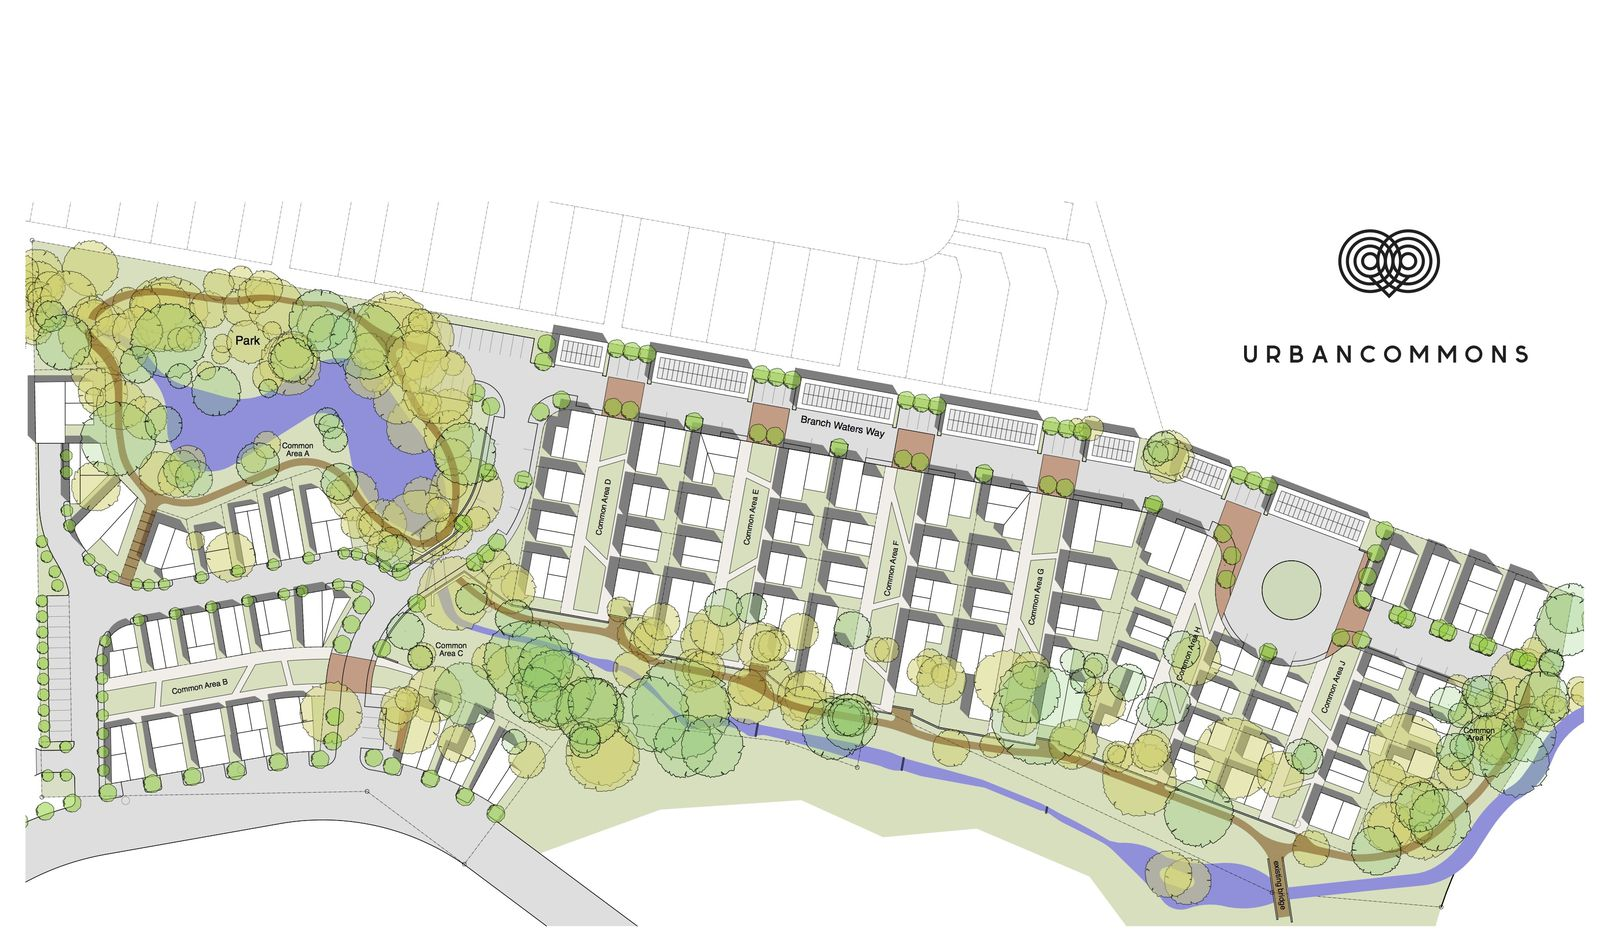 The Urban Commons neighborhood will have about 80 houses.